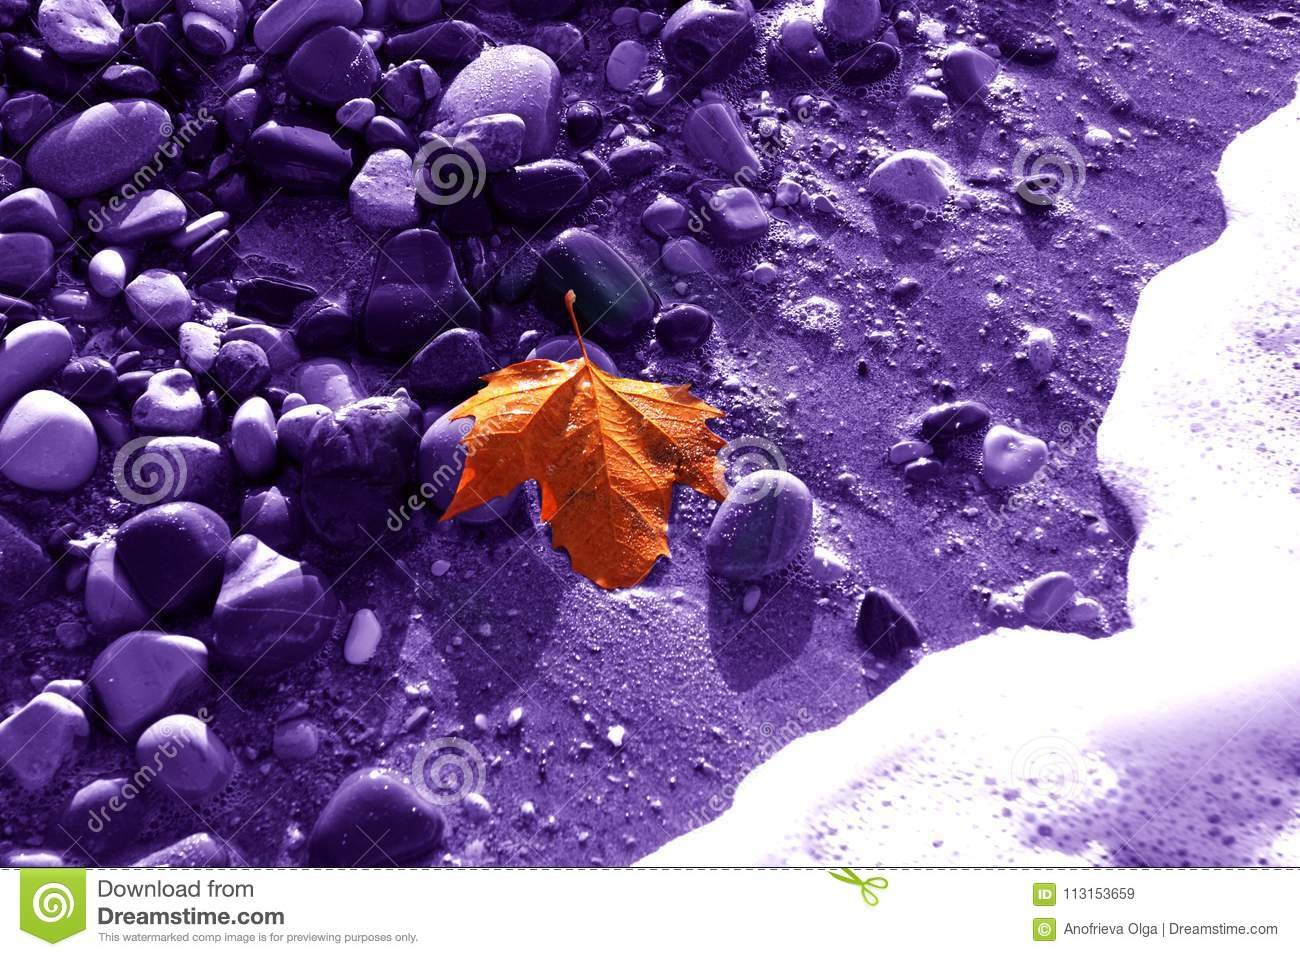 Lonely gold leaf of a maple on a violet background of damp stone